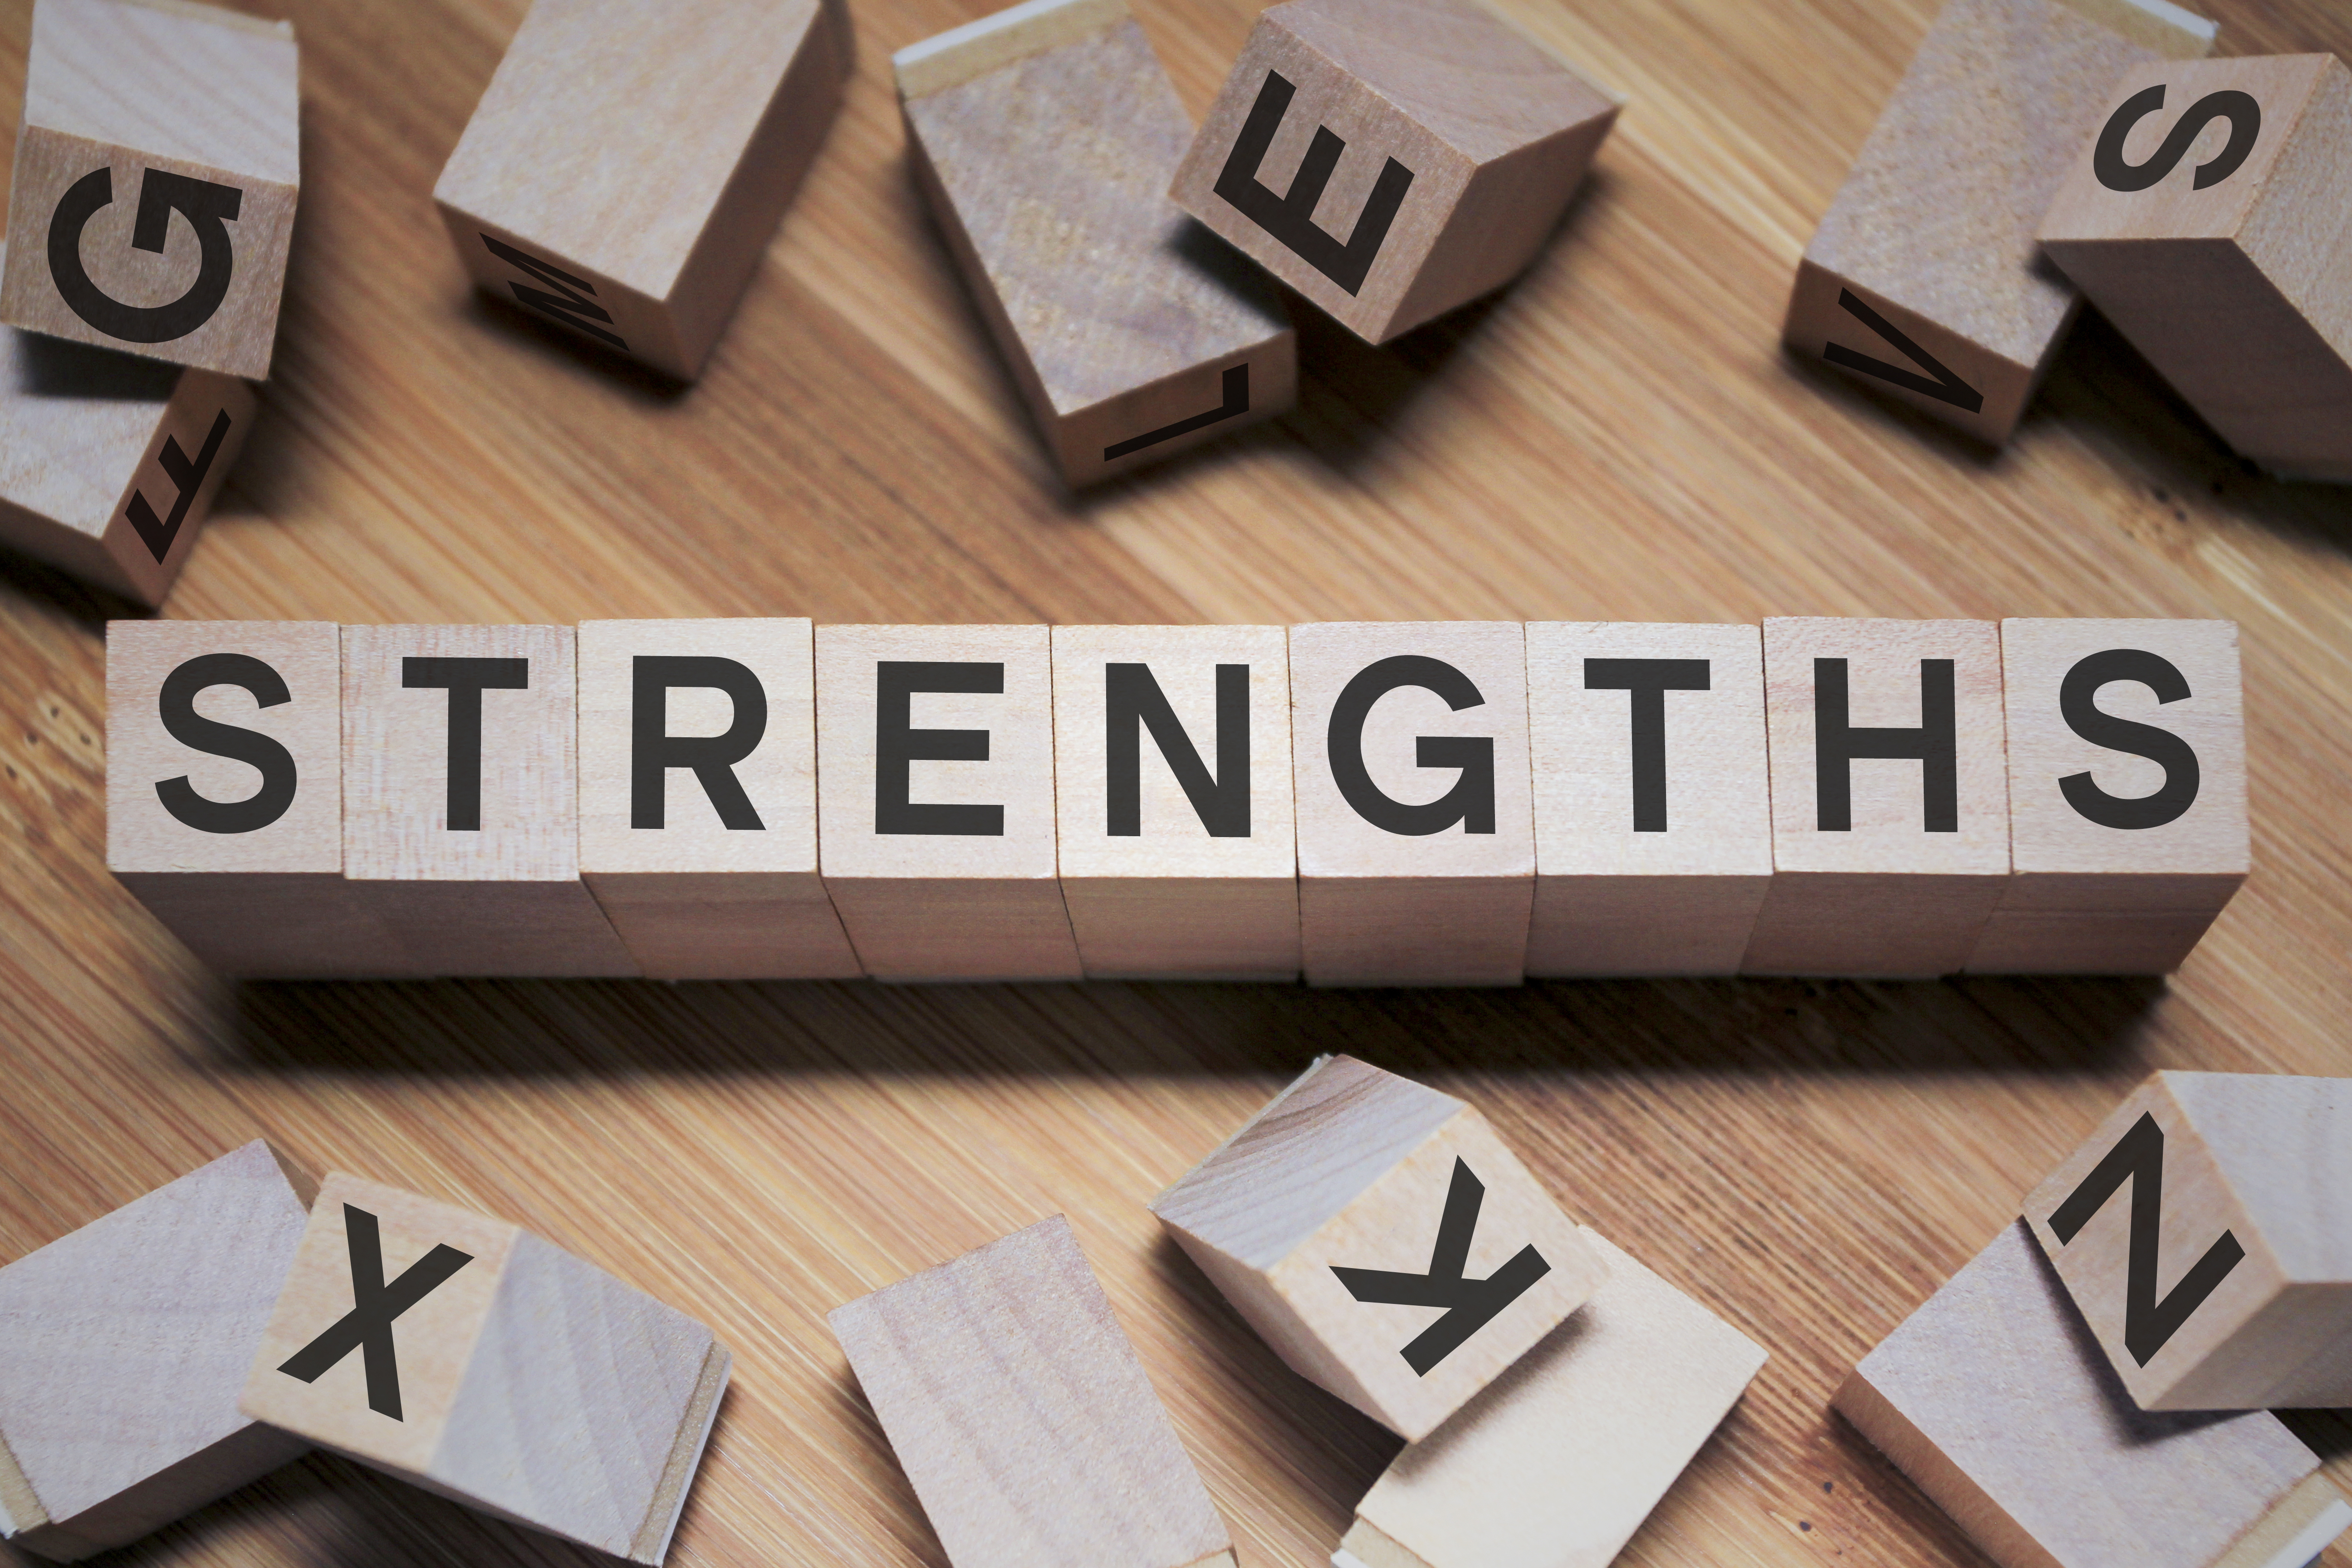 Using Strengths to thrive